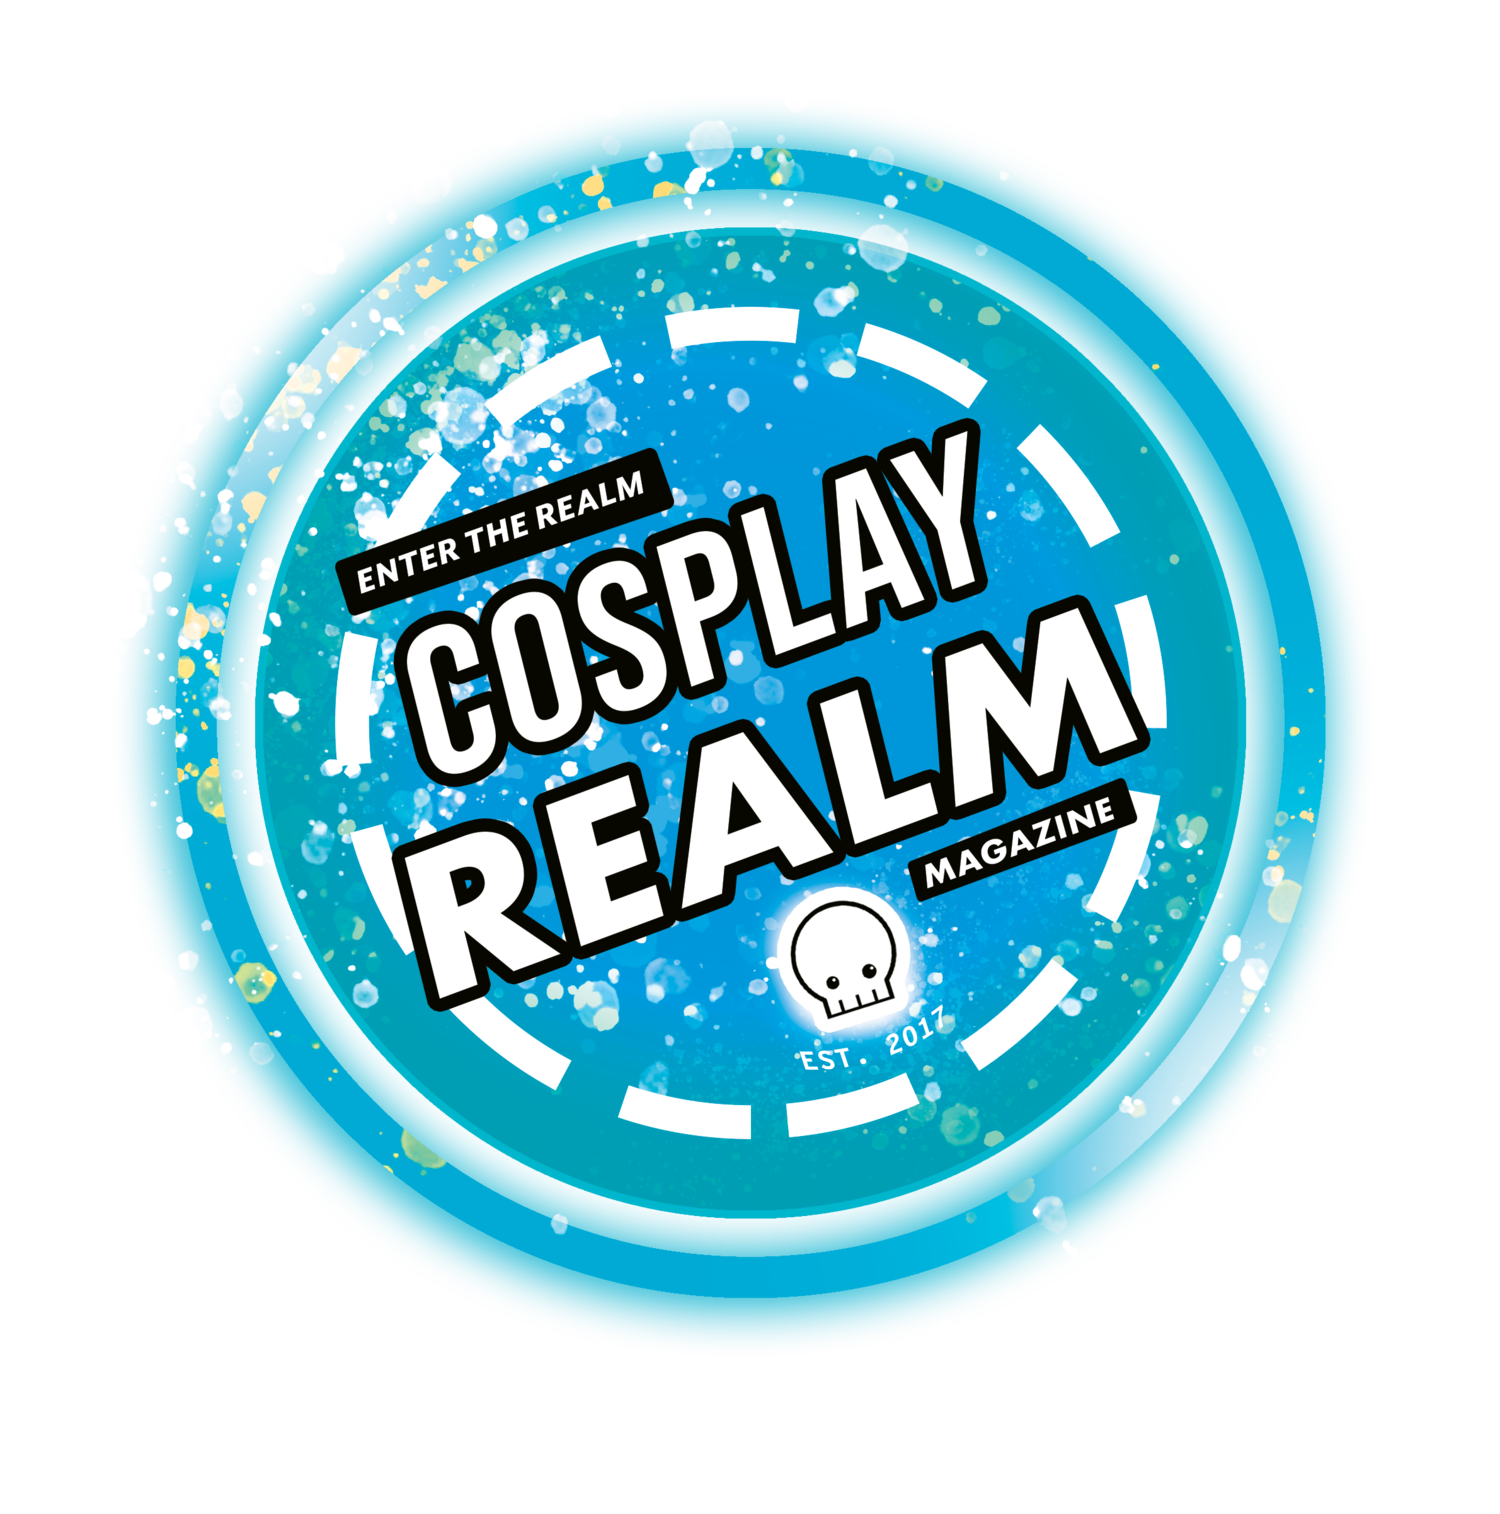 Cosplay Realm Magazine